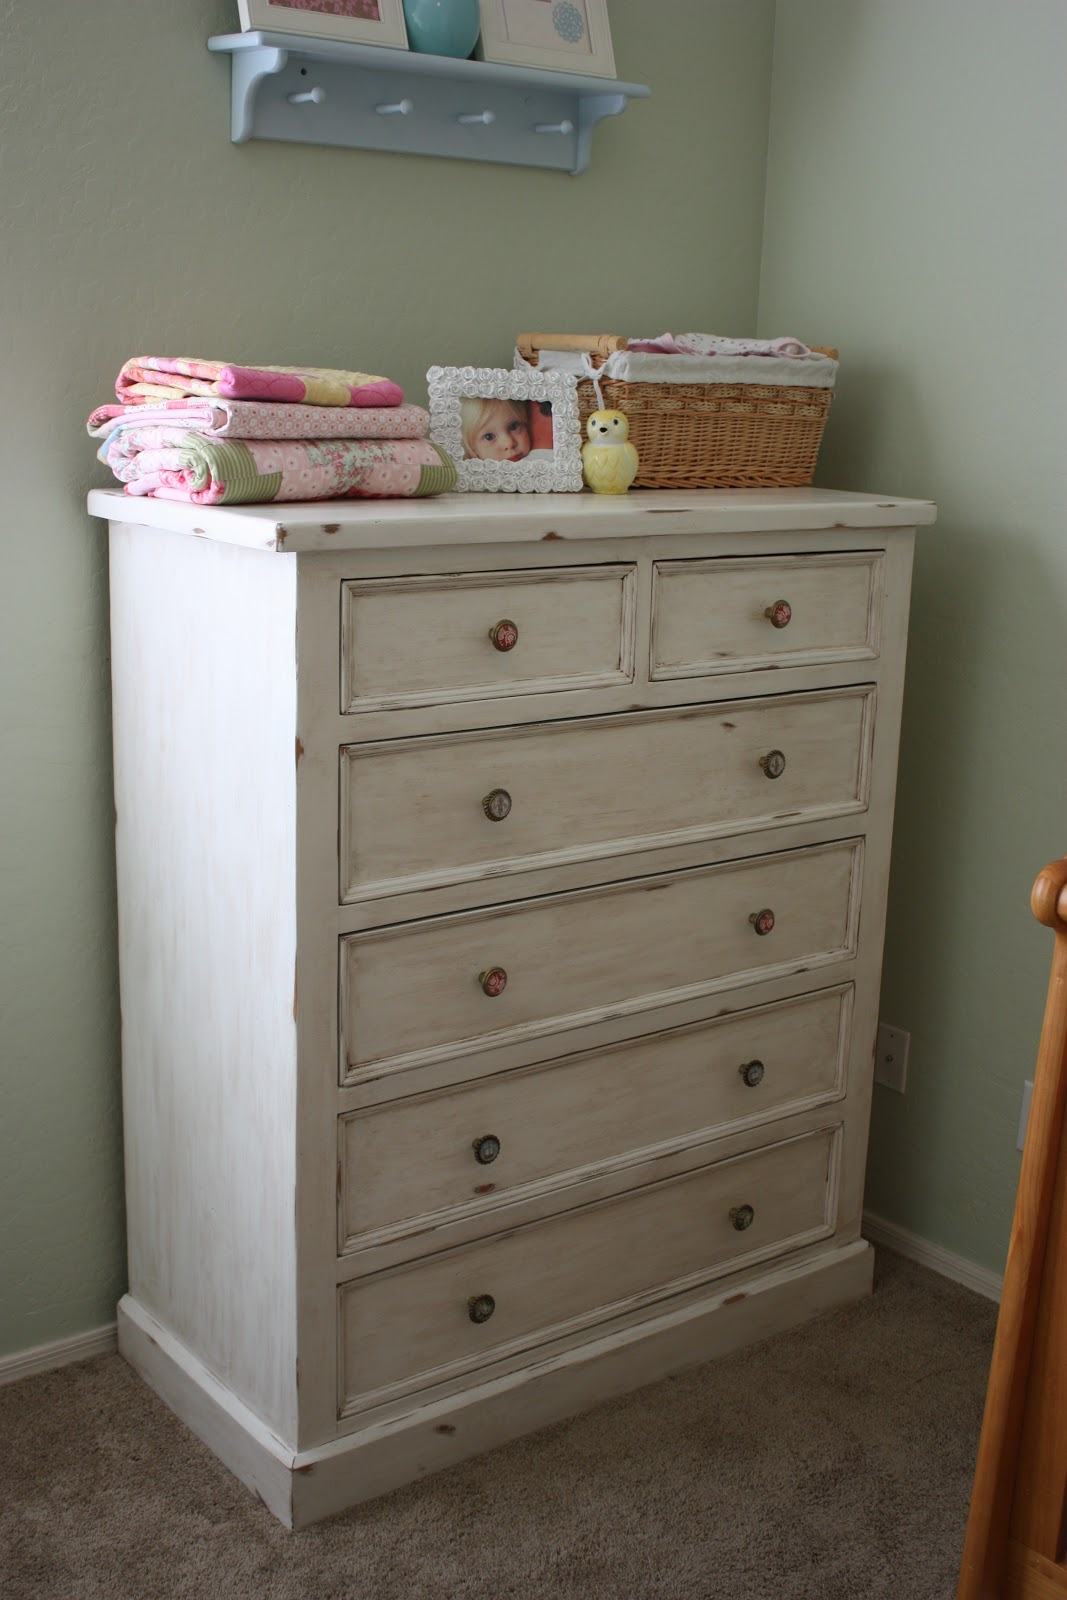 The pretty poppy how to refinish furniture in a vintage style for Redo furniture